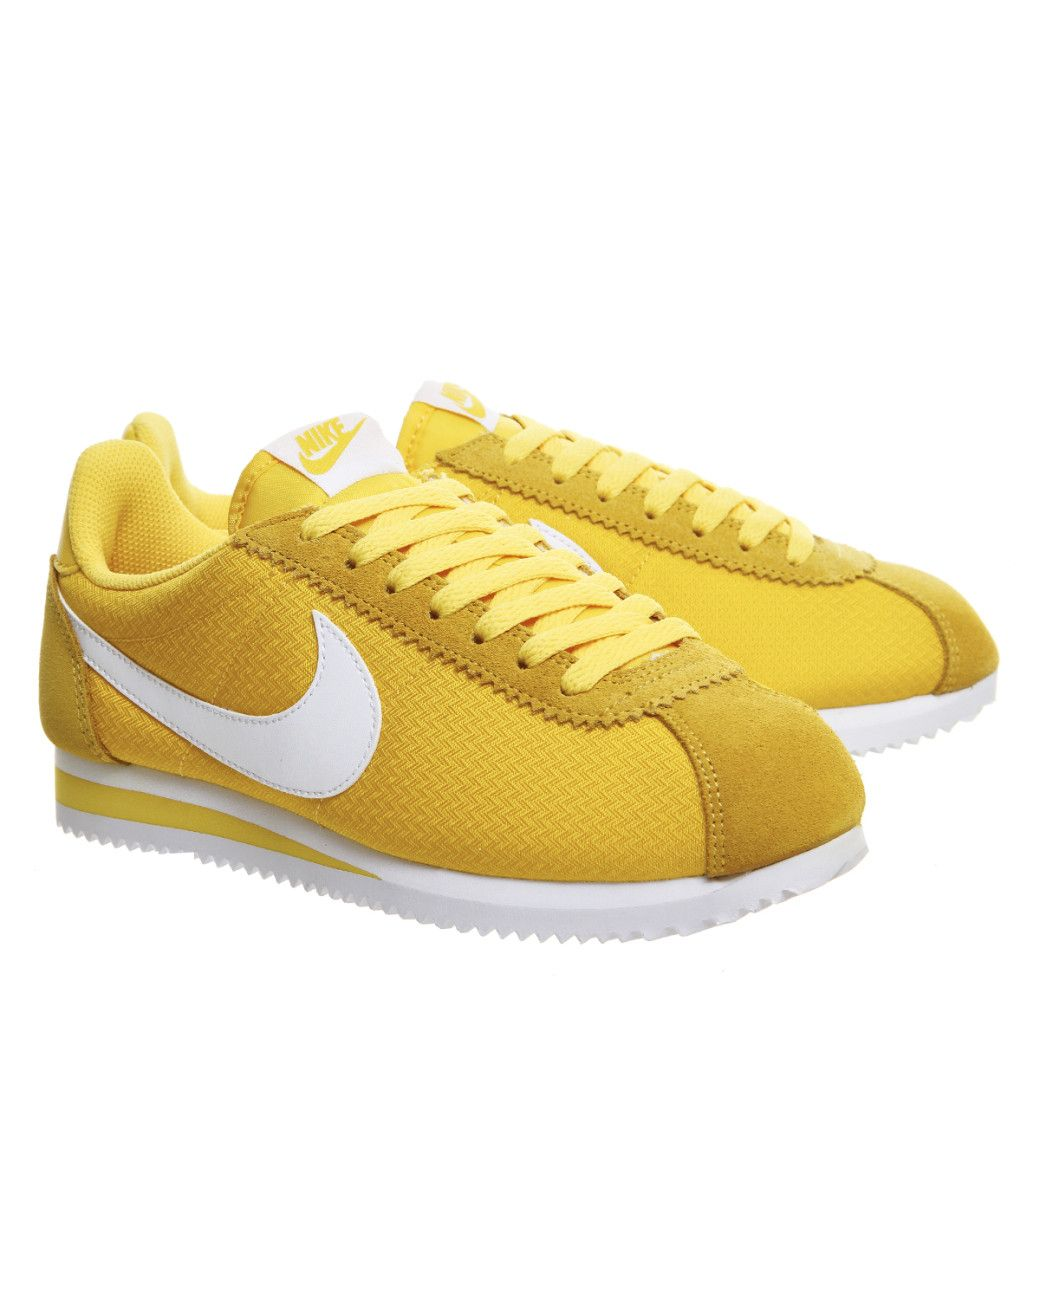 best website 0717d c15d1 Buy Nike Women s White Cortez Nylon Trainers, starting at £45. Similar  products also available. SALE now on!